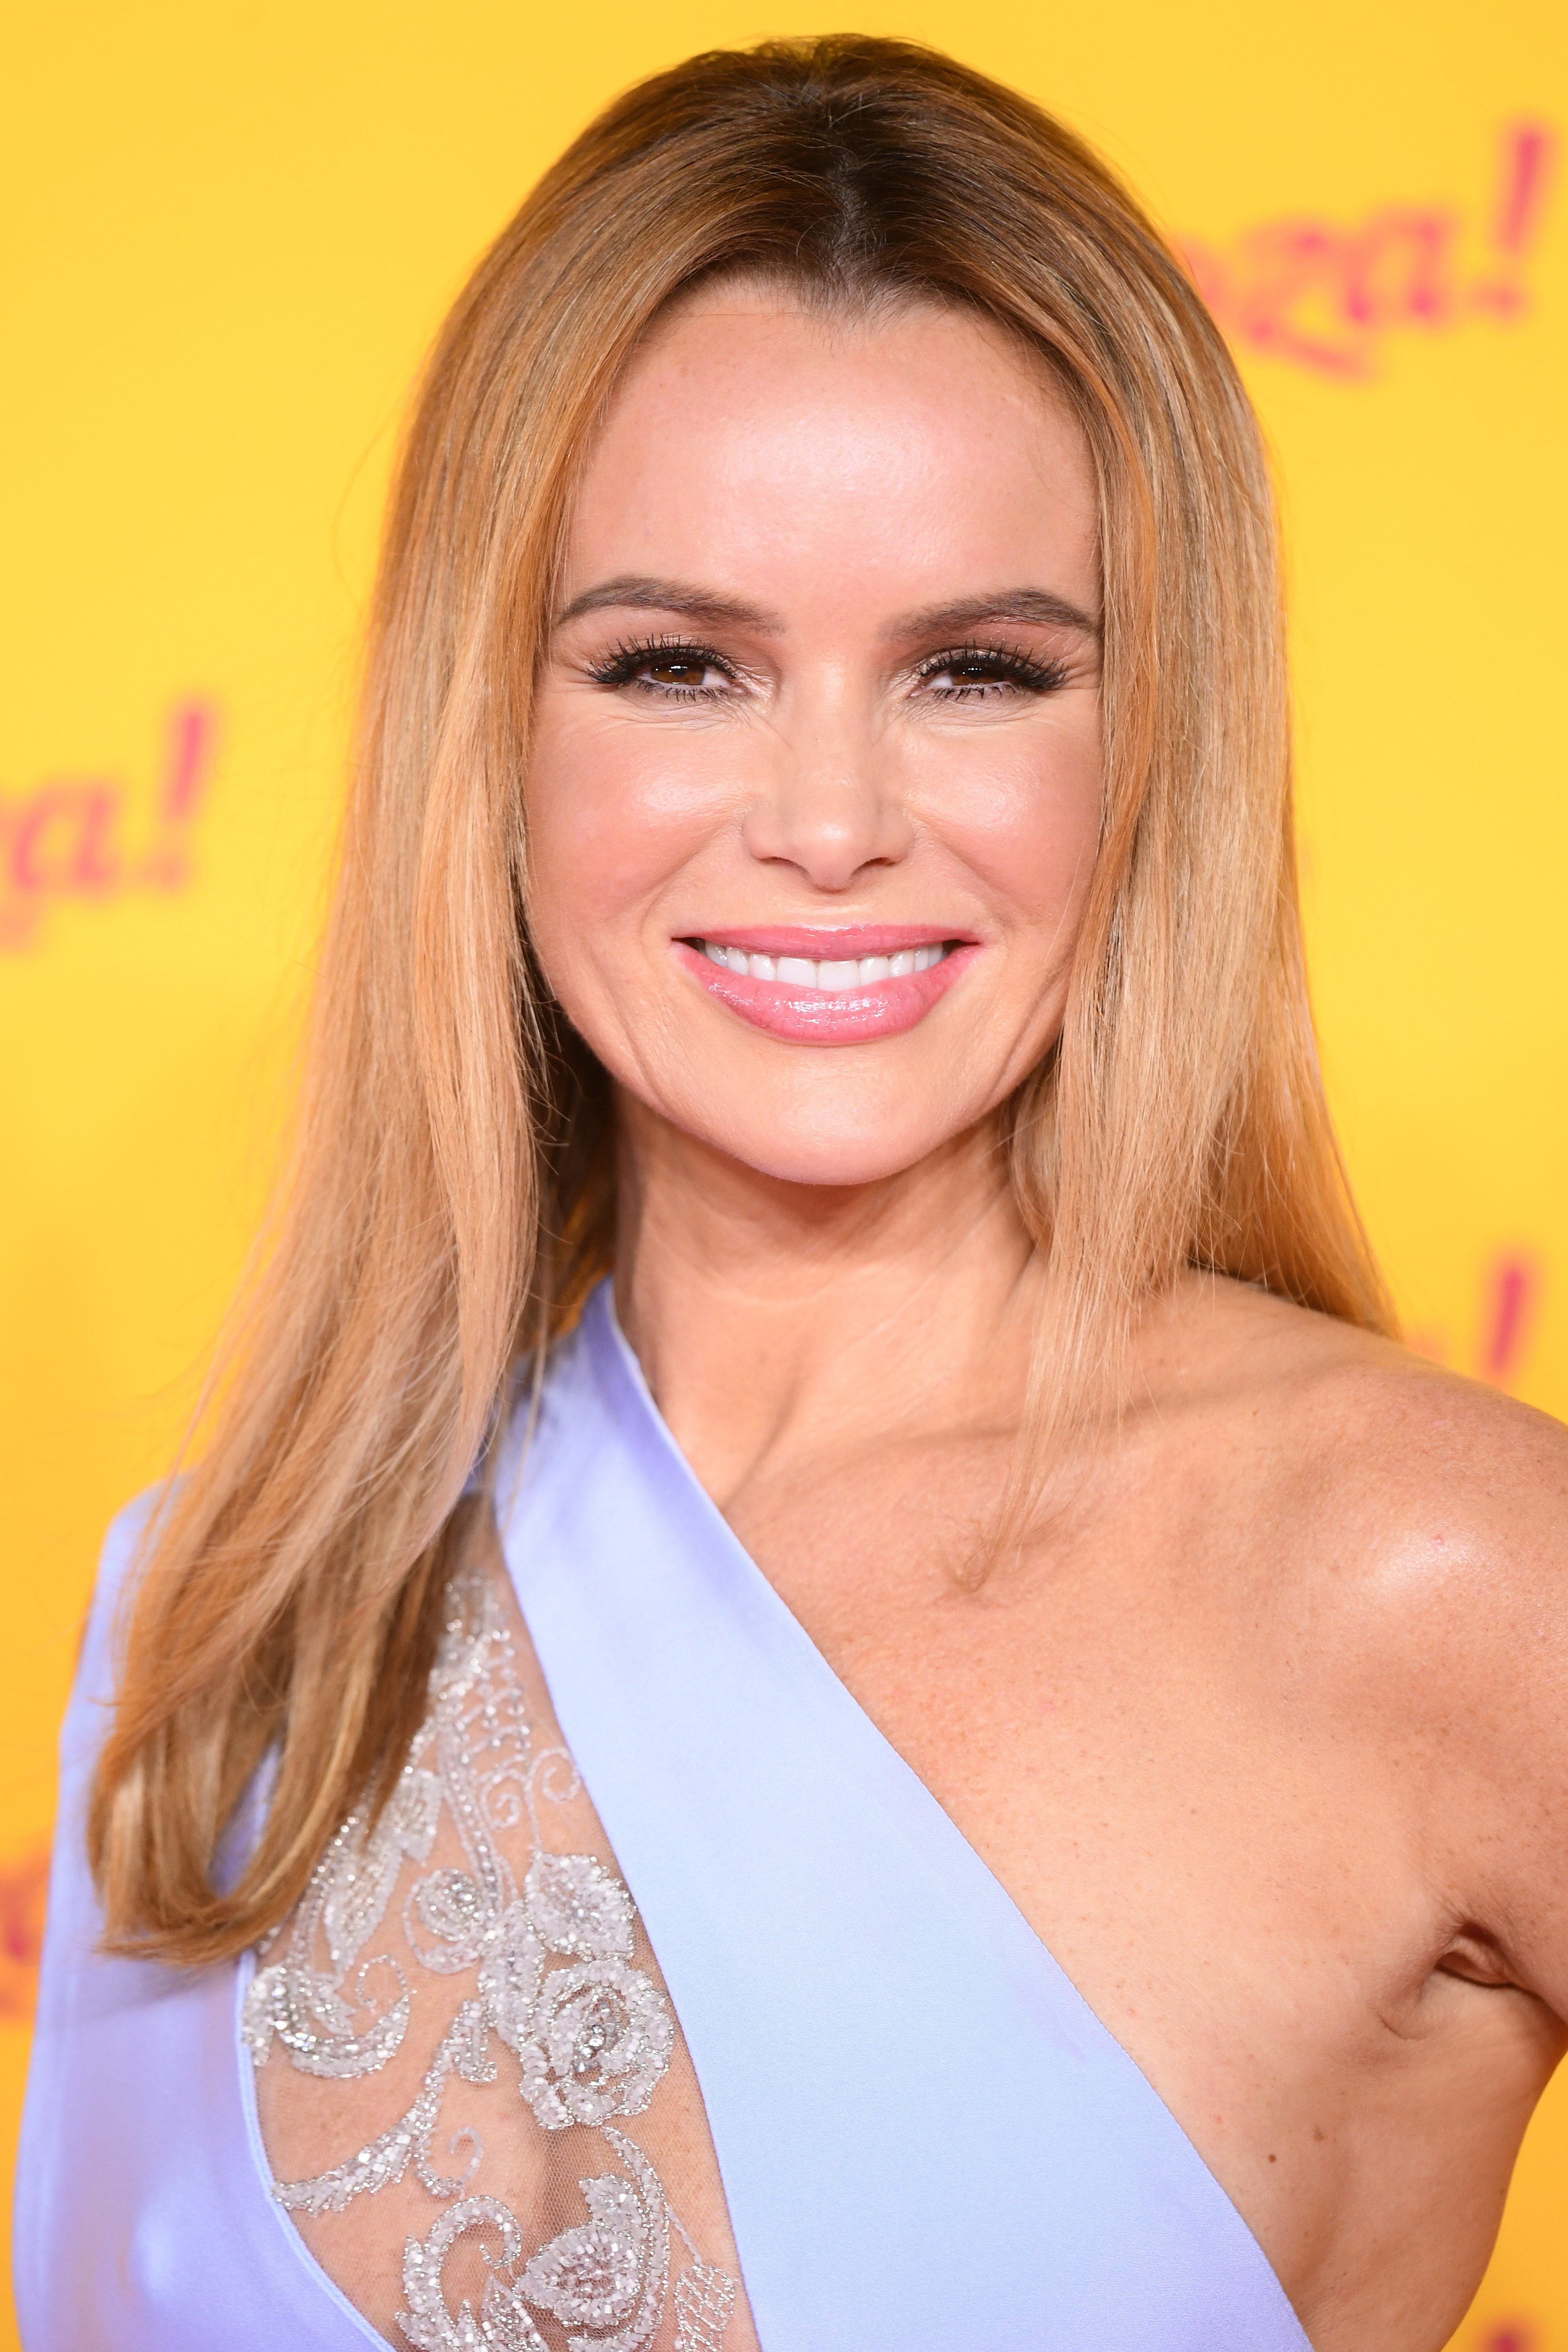 Video Amanda Holden nudes (89 photo), Topless, Paparazzi, Instagram, braless 2015